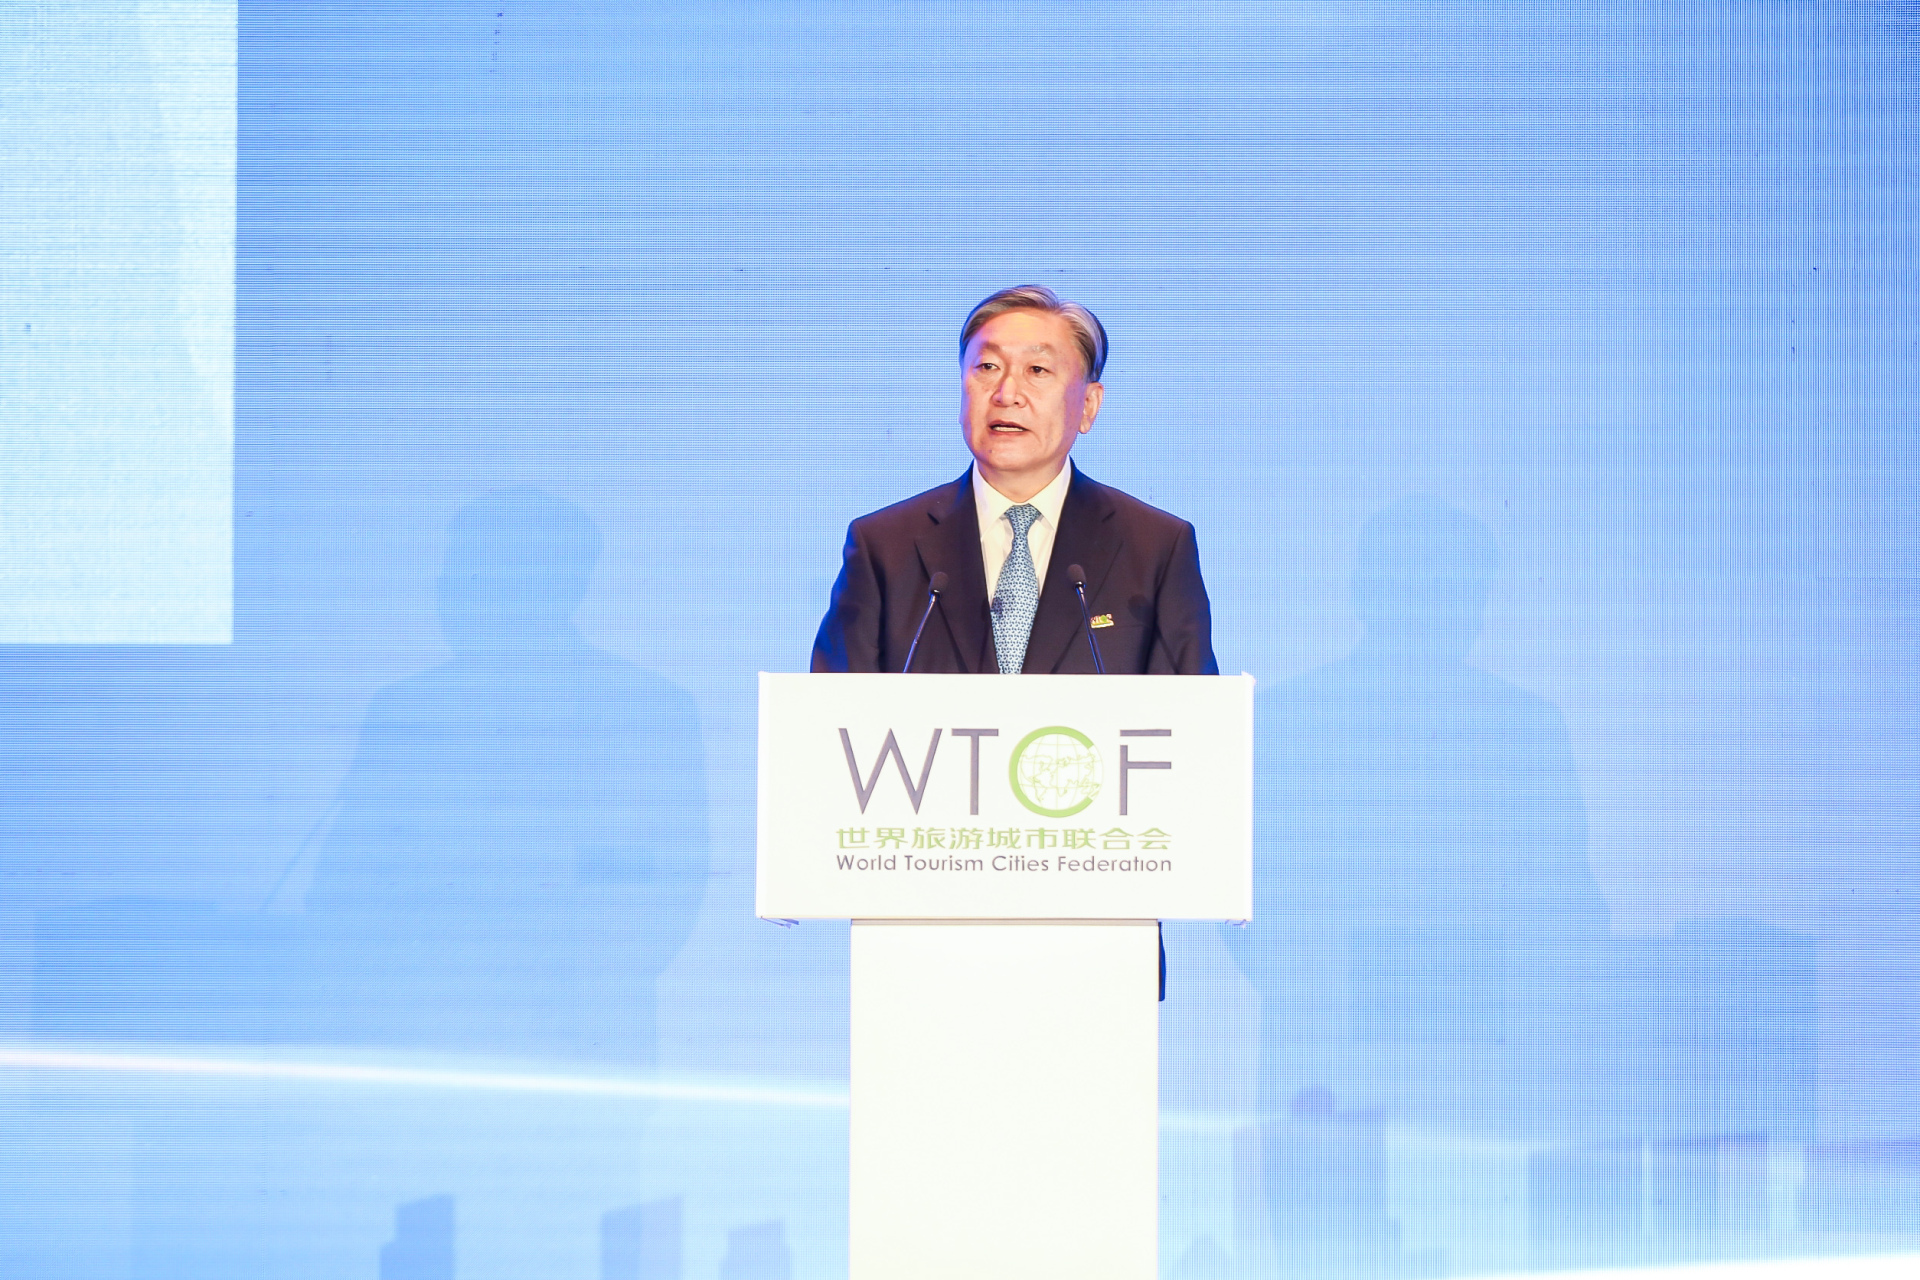 Chen Dong, Secretary-General of World Tourism Cities Federation (WTCF) and General-Director of Beijing Municipal Bureau of Culture and Tourism, delivers a speech at the Tourism Investment and Financing Conference